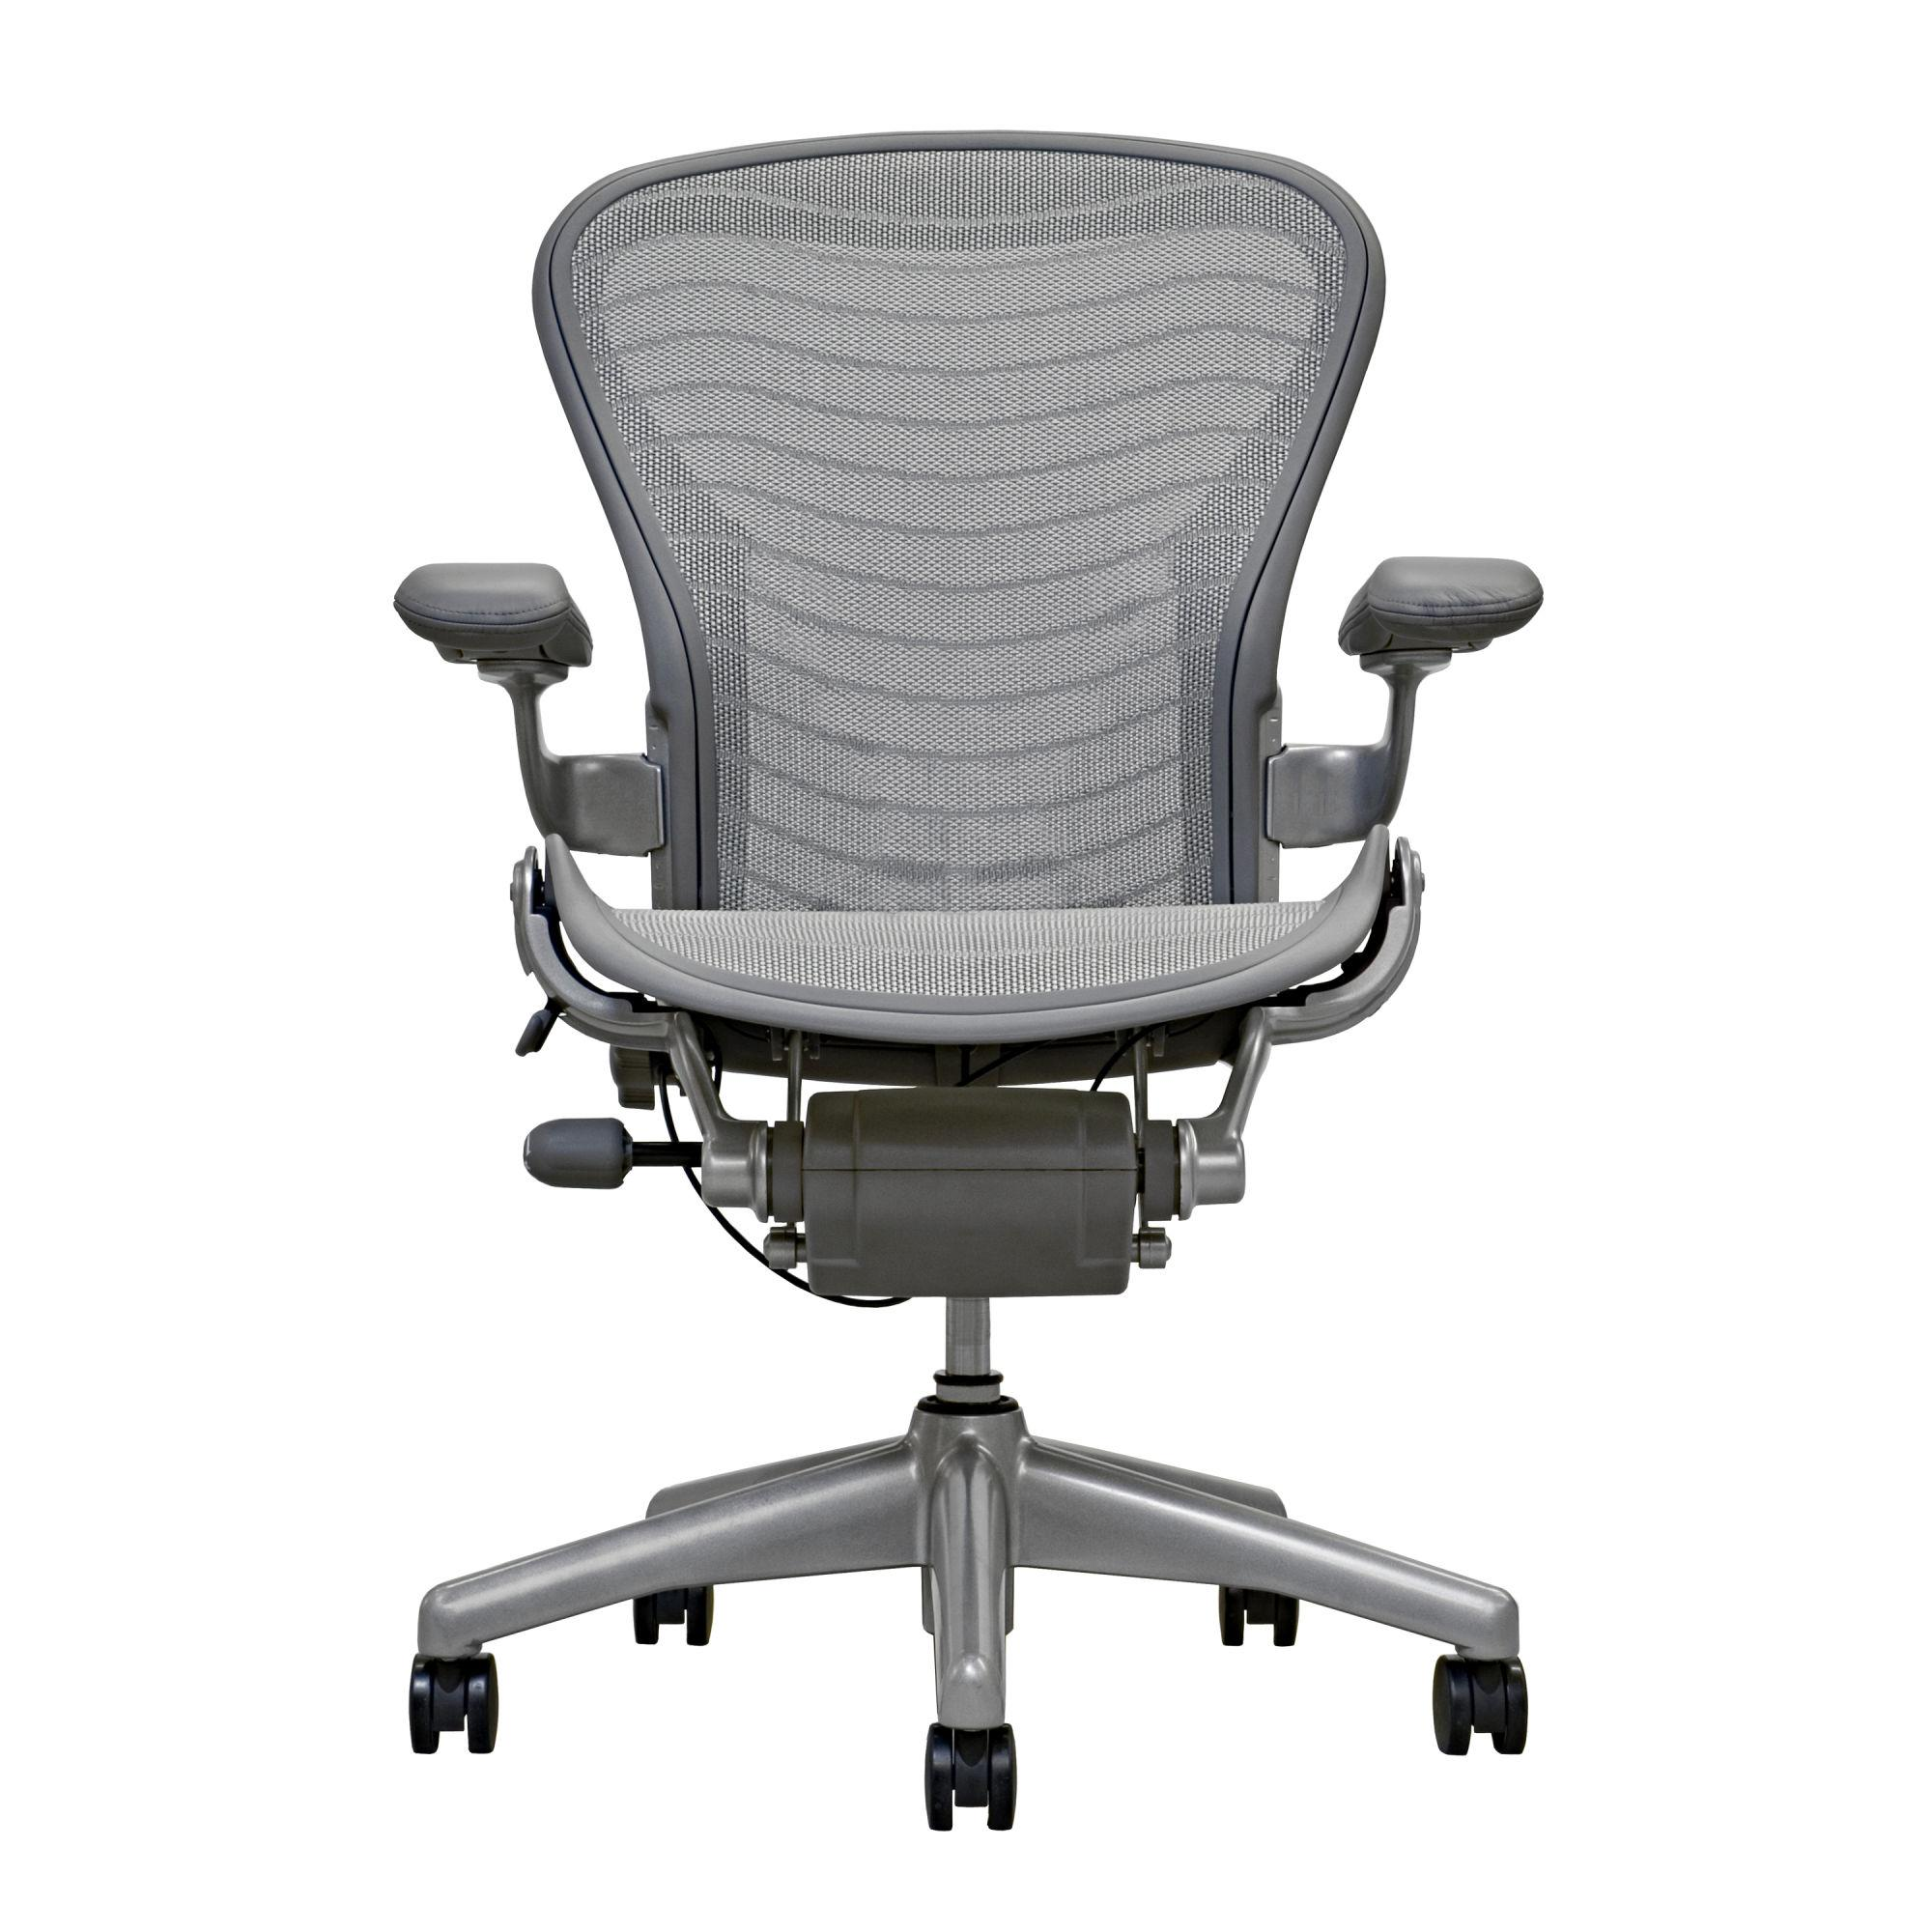 aeron office chairs ergonomic chair definition herman miller kontorstol som er miljøvenlig og